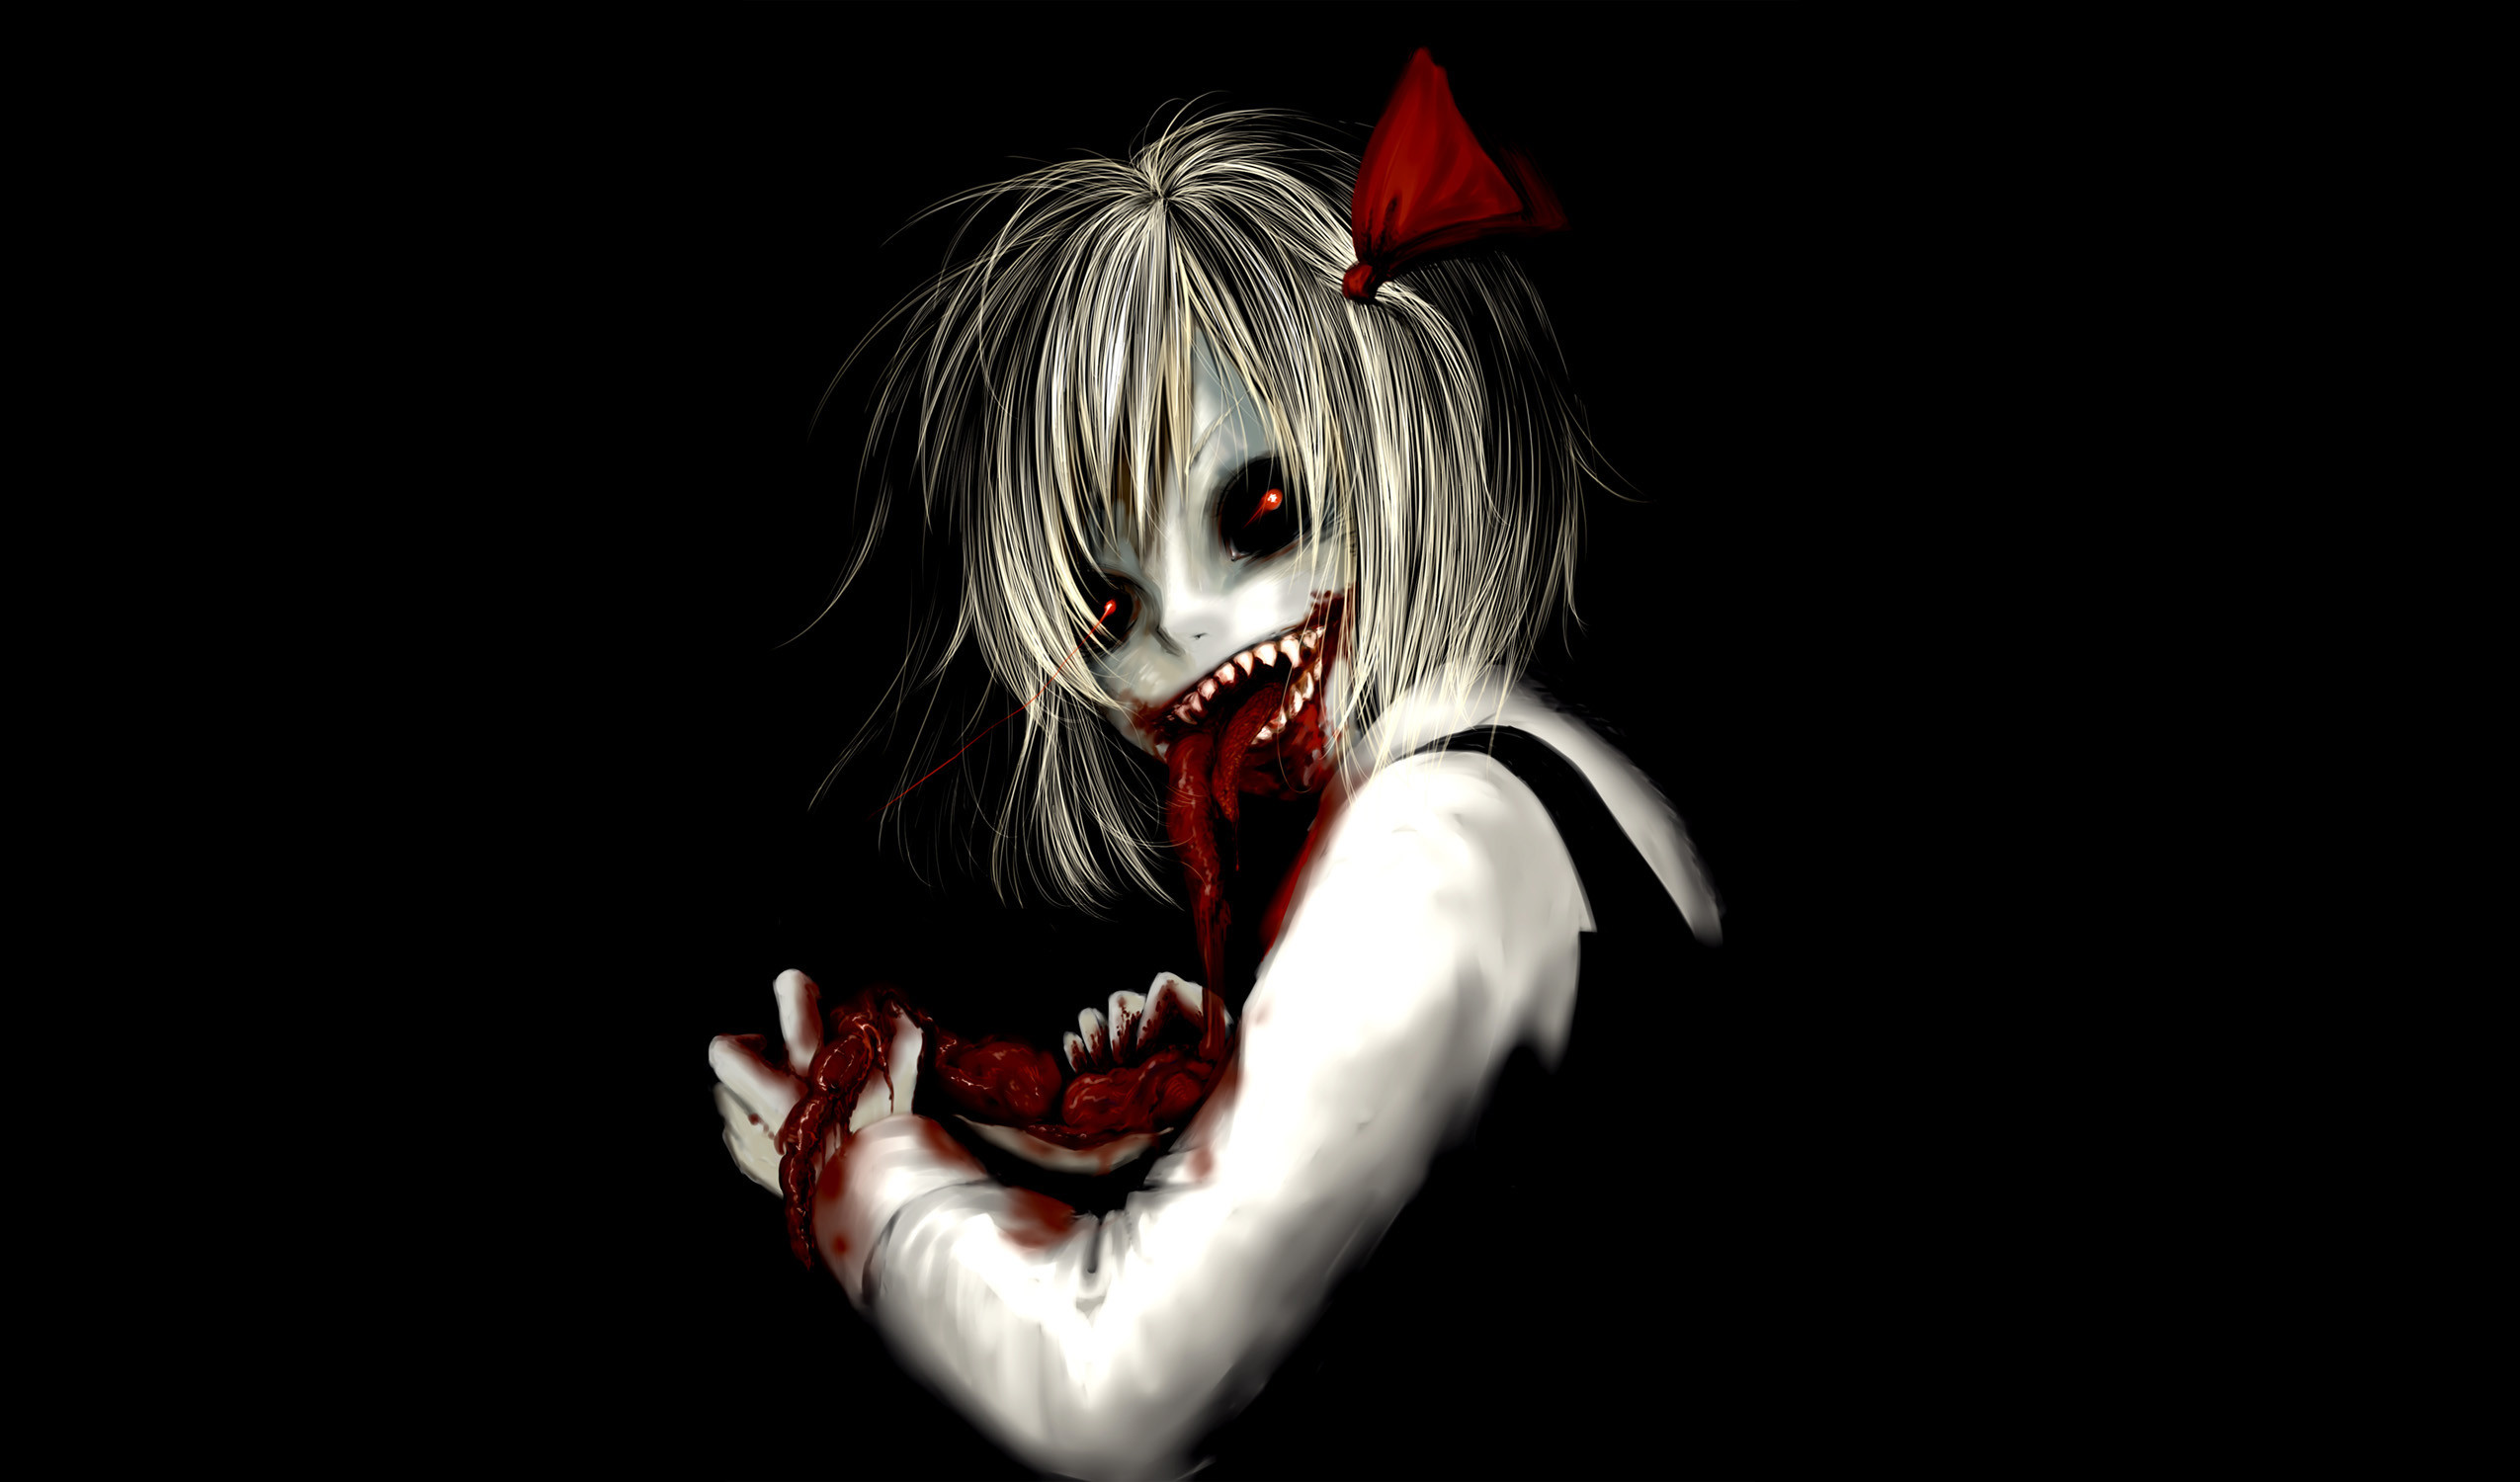 Scary Anime Wallpaper 58 Images